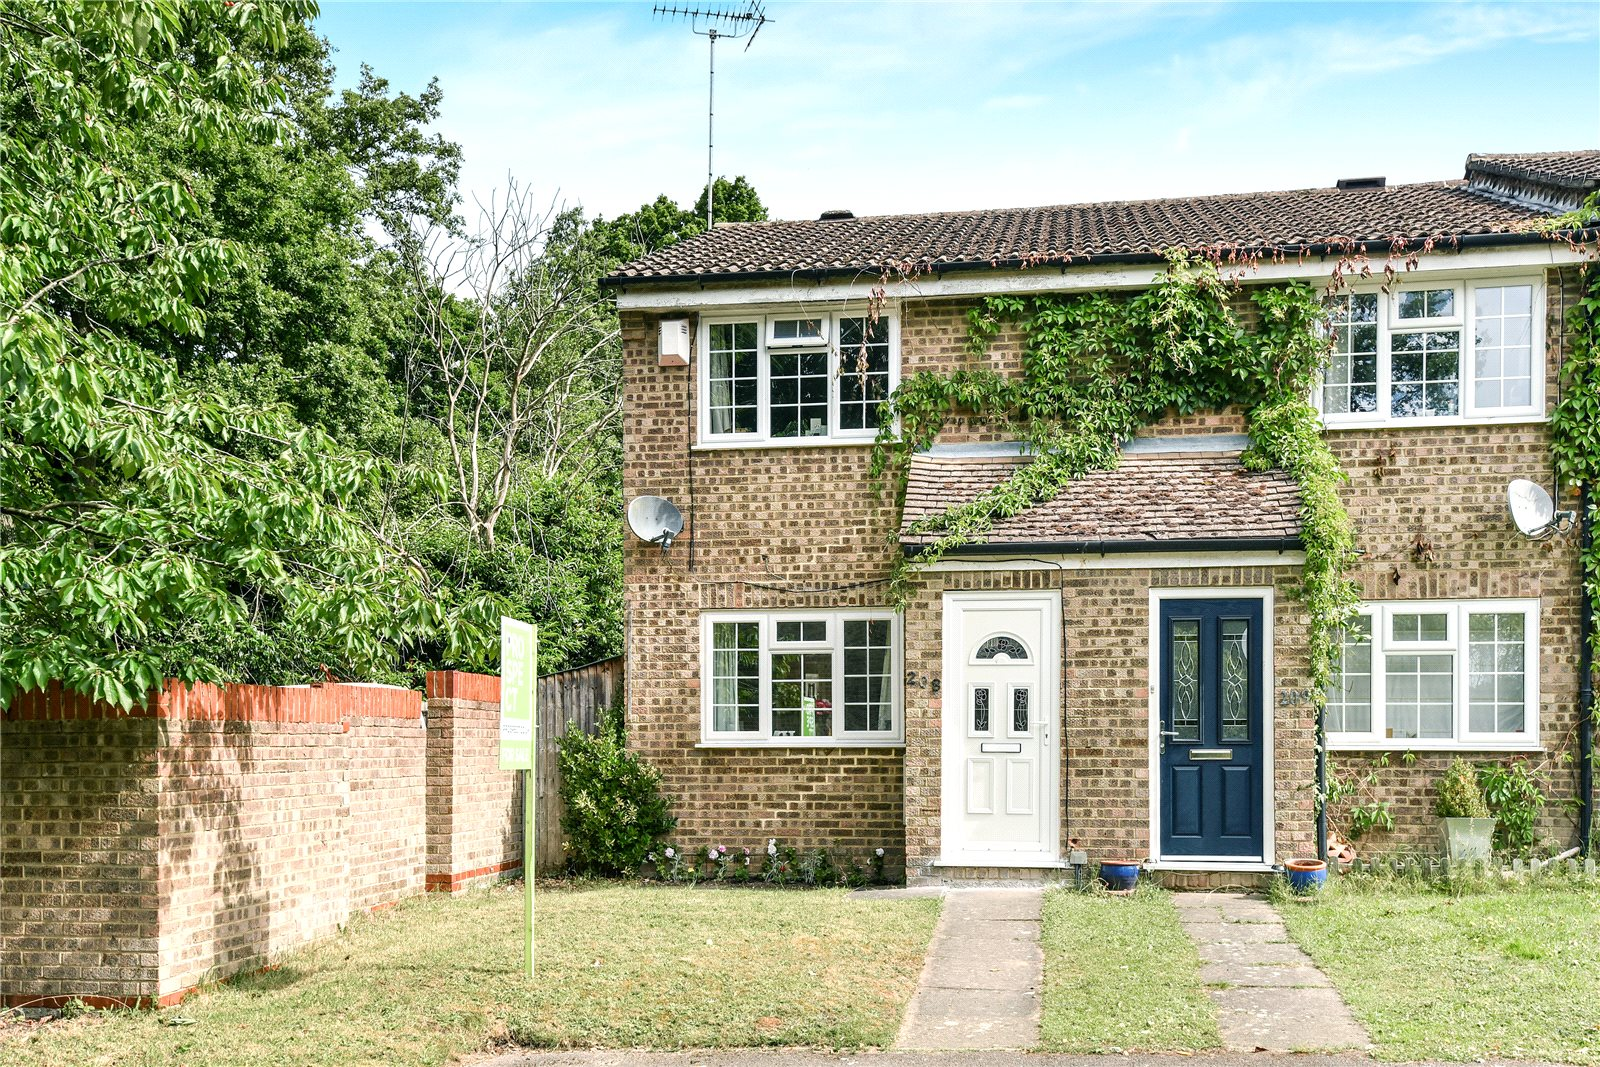 2 Bedrooms End Of Terrace House for sale in Evenlode Way, Sandhurst, Berkshire, GU47